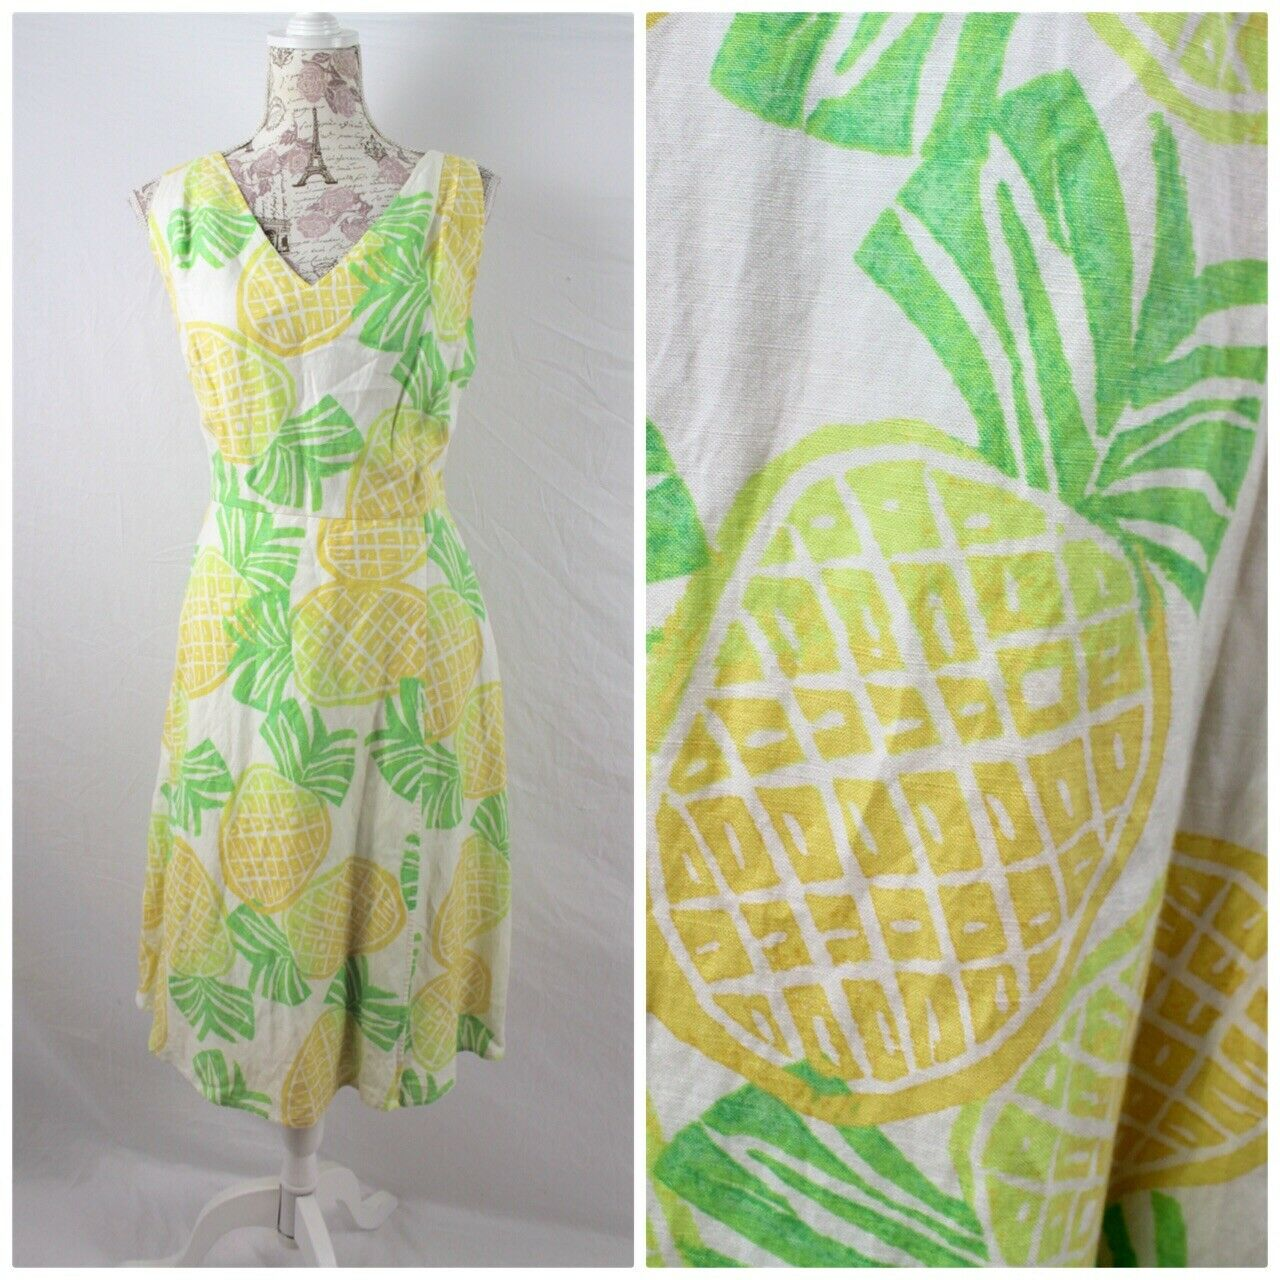 Pineapple Print Linen Dress by Sigrid Olsen Sz 8